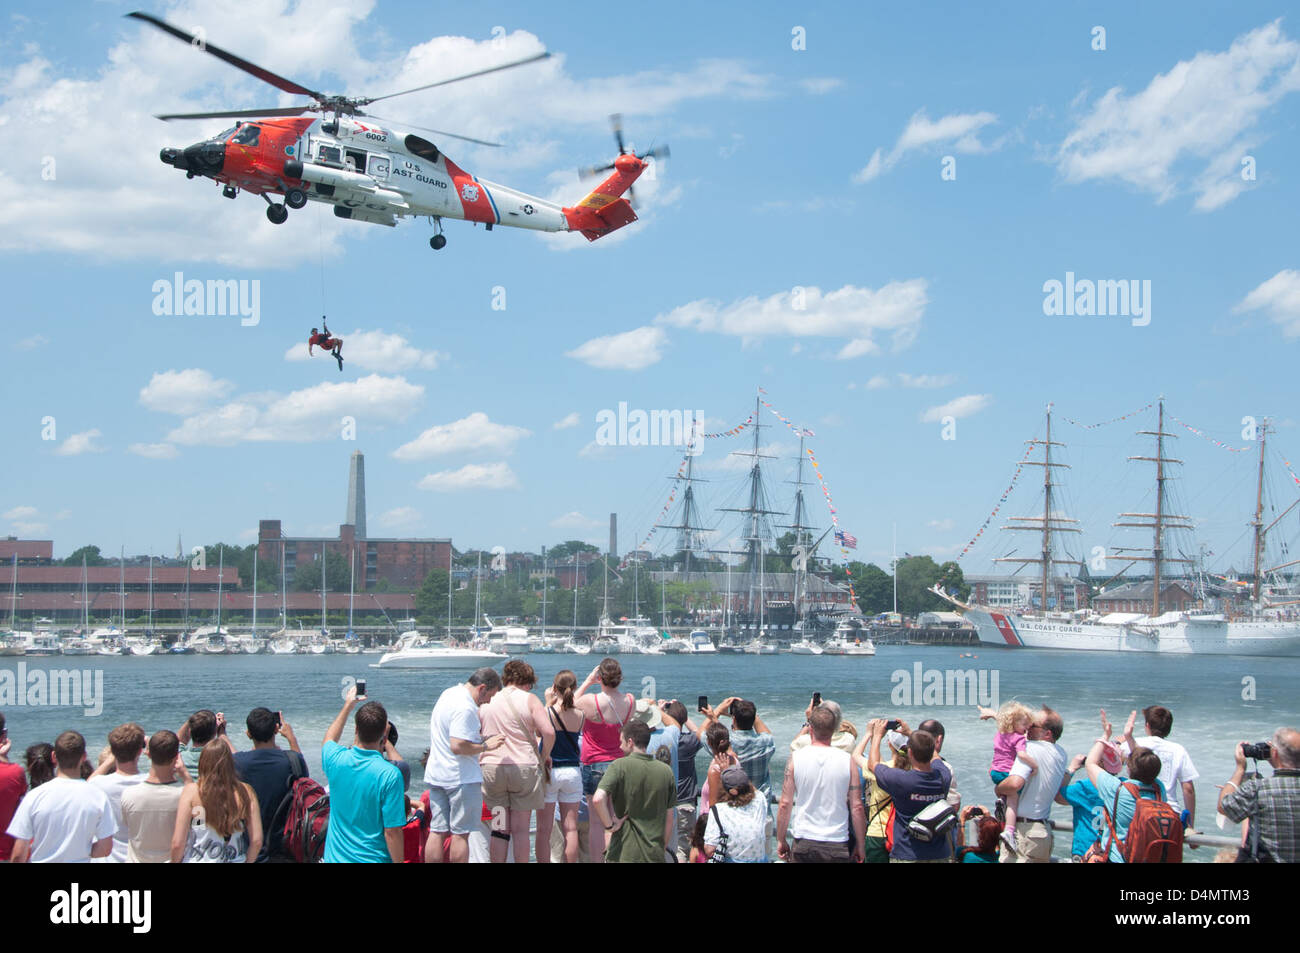 MH-60T Search and Rescue Demonstration - Stock Image